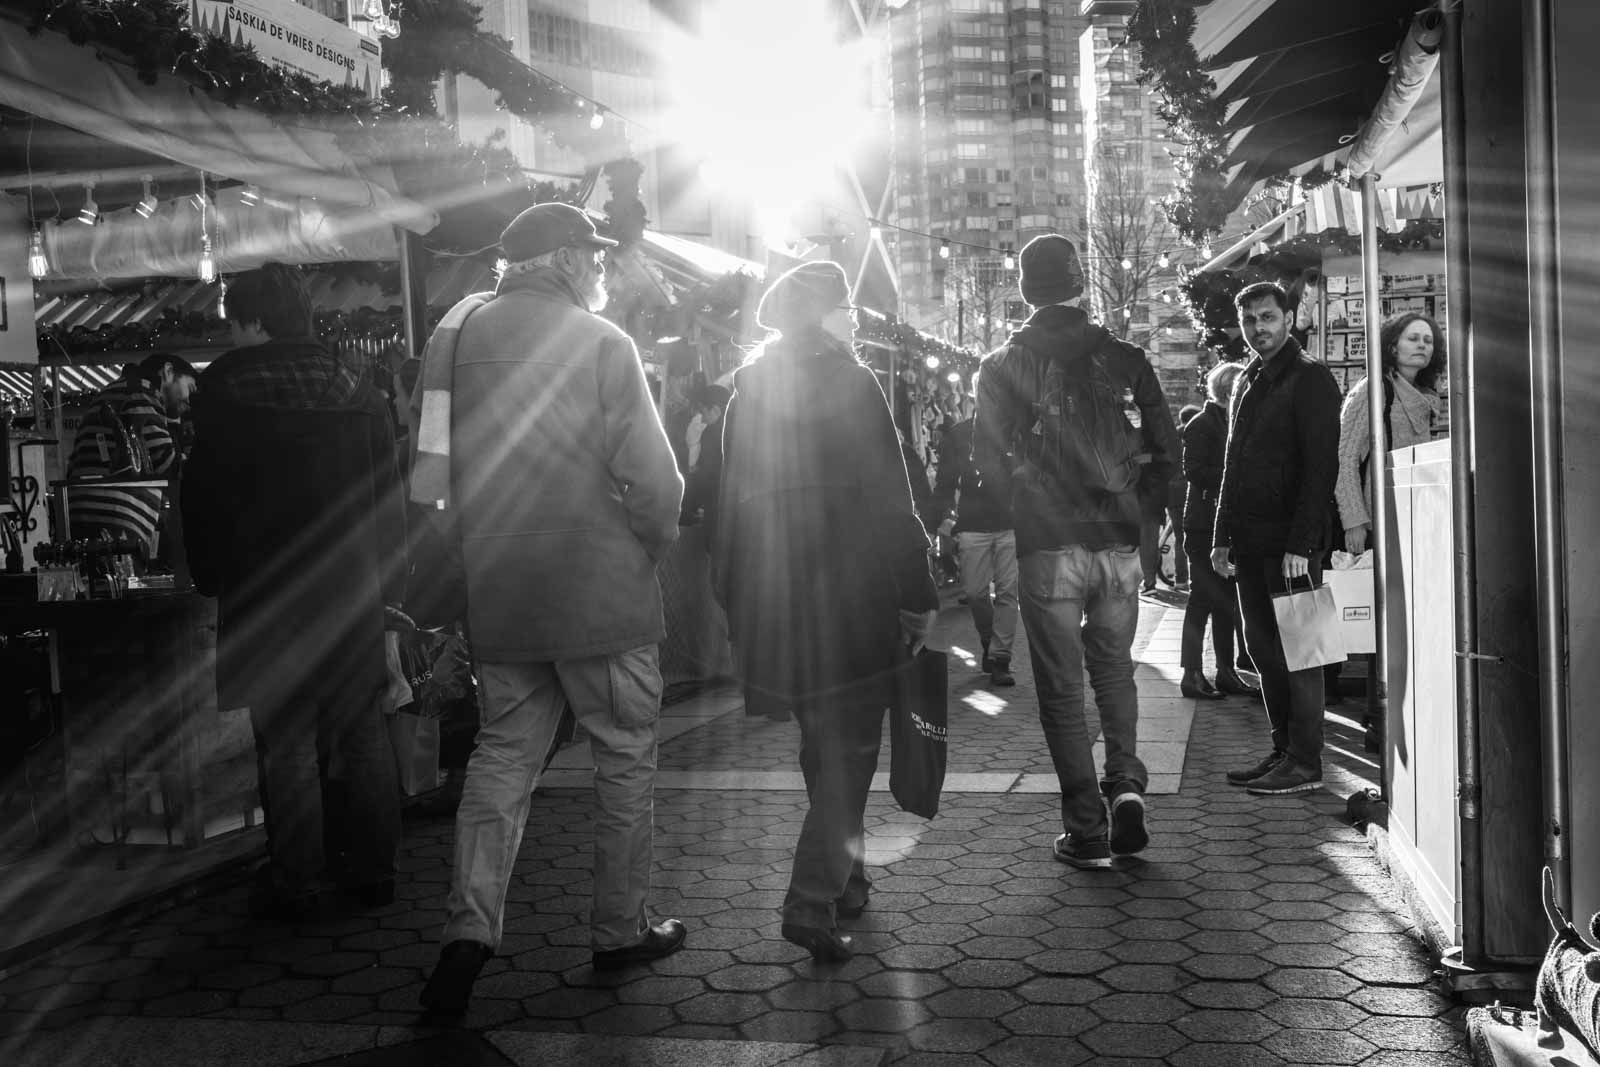 black and white street photography of a crowded street